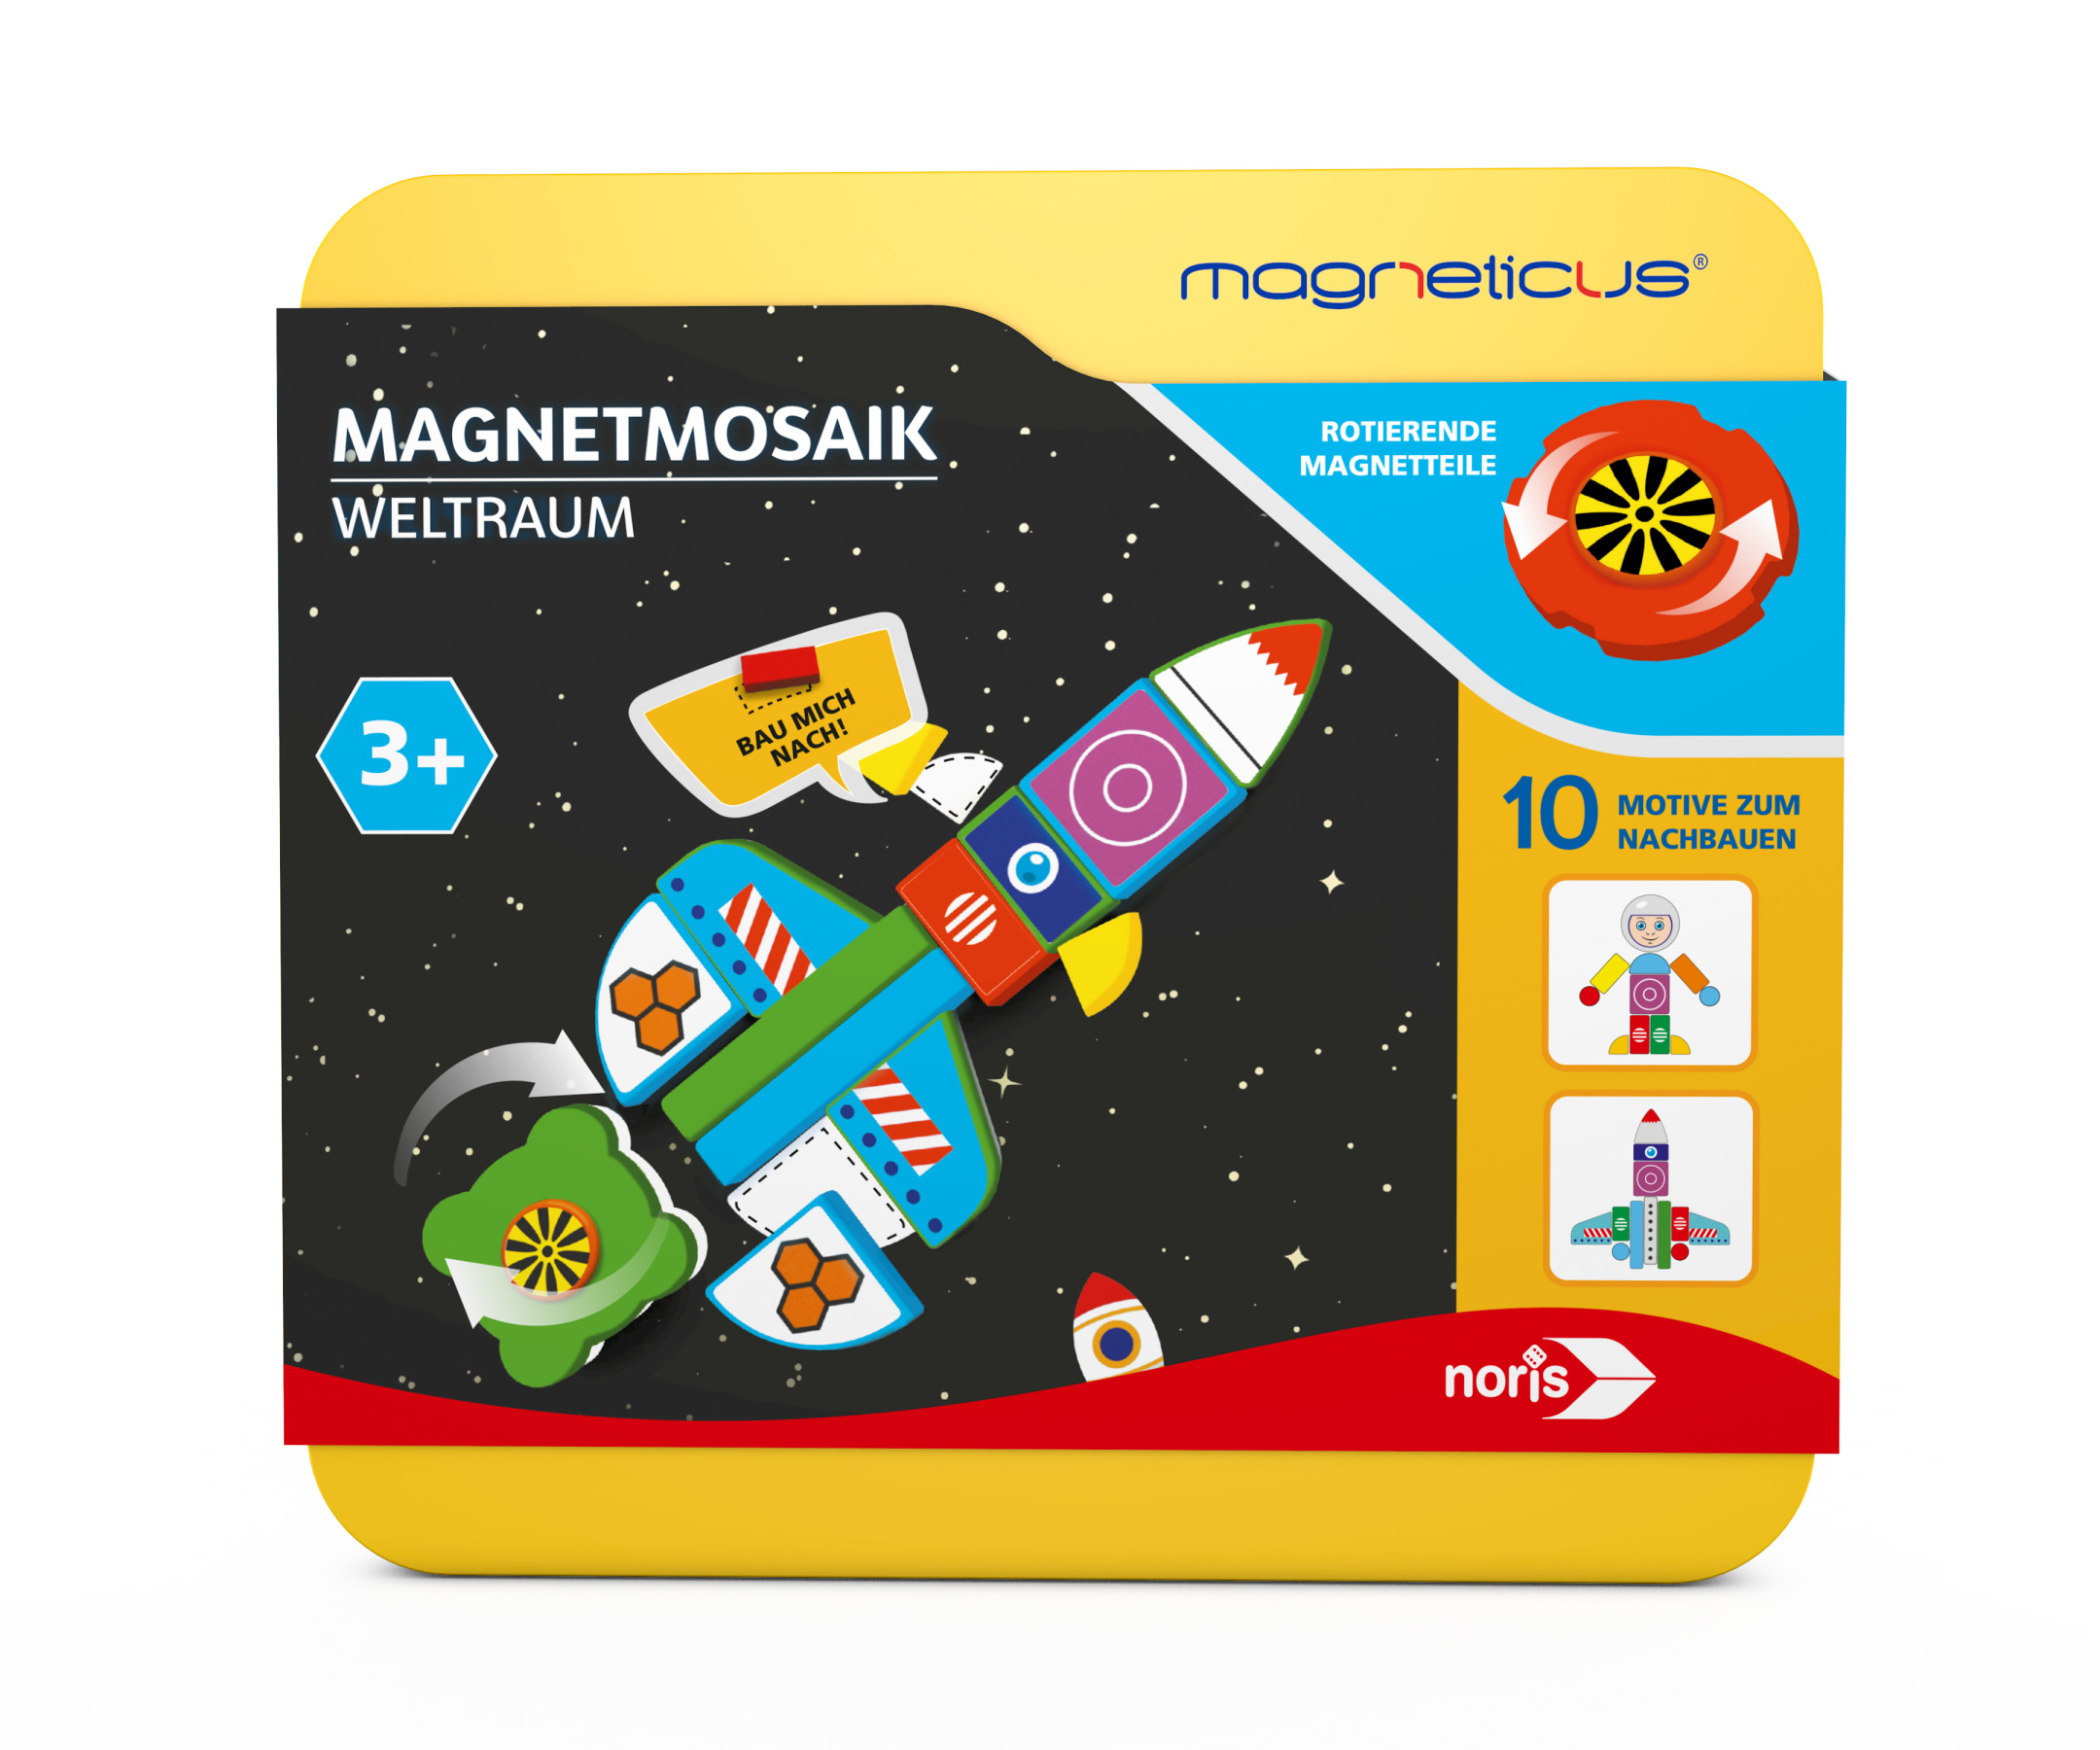 Magneticus Magnetmosaik - Weltraum